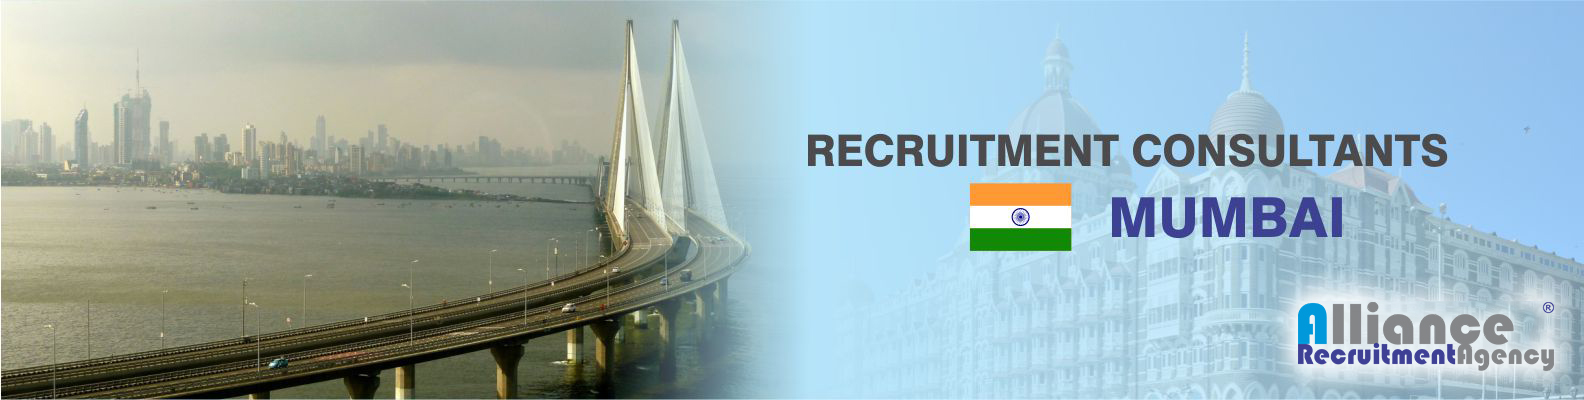 Recruitment Consultants - Best Recruitment Consultants in Mumbai